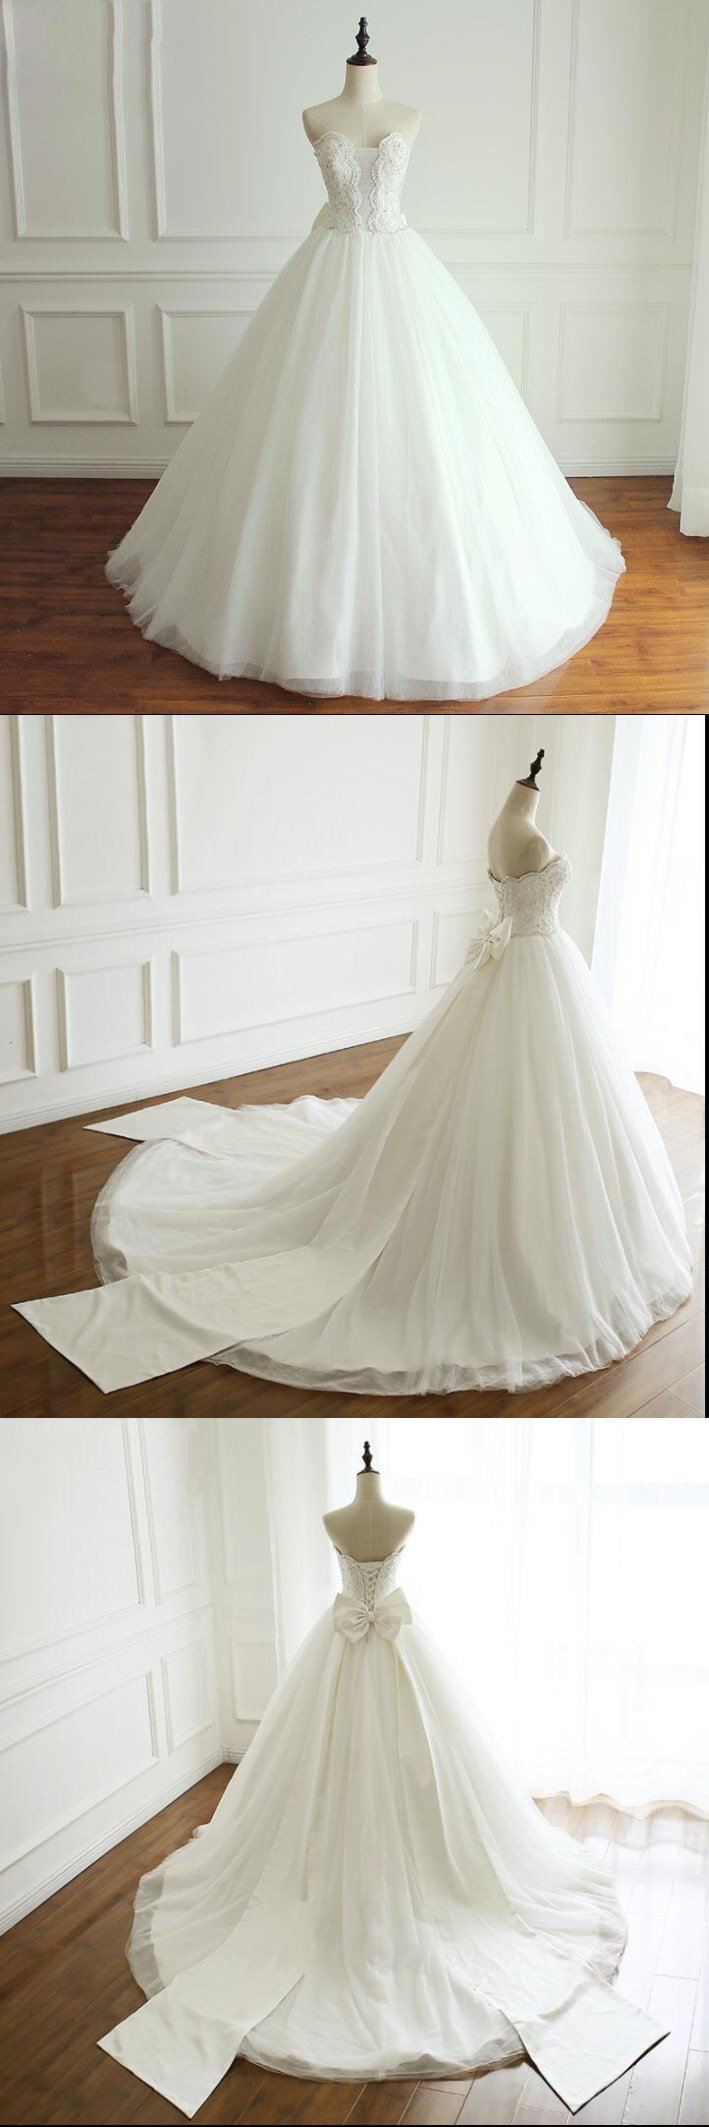 A-line White Ivory Elegant Weeding Dresses, Princess Summer Free Custom Bridal Gowns with Bow, WD0269